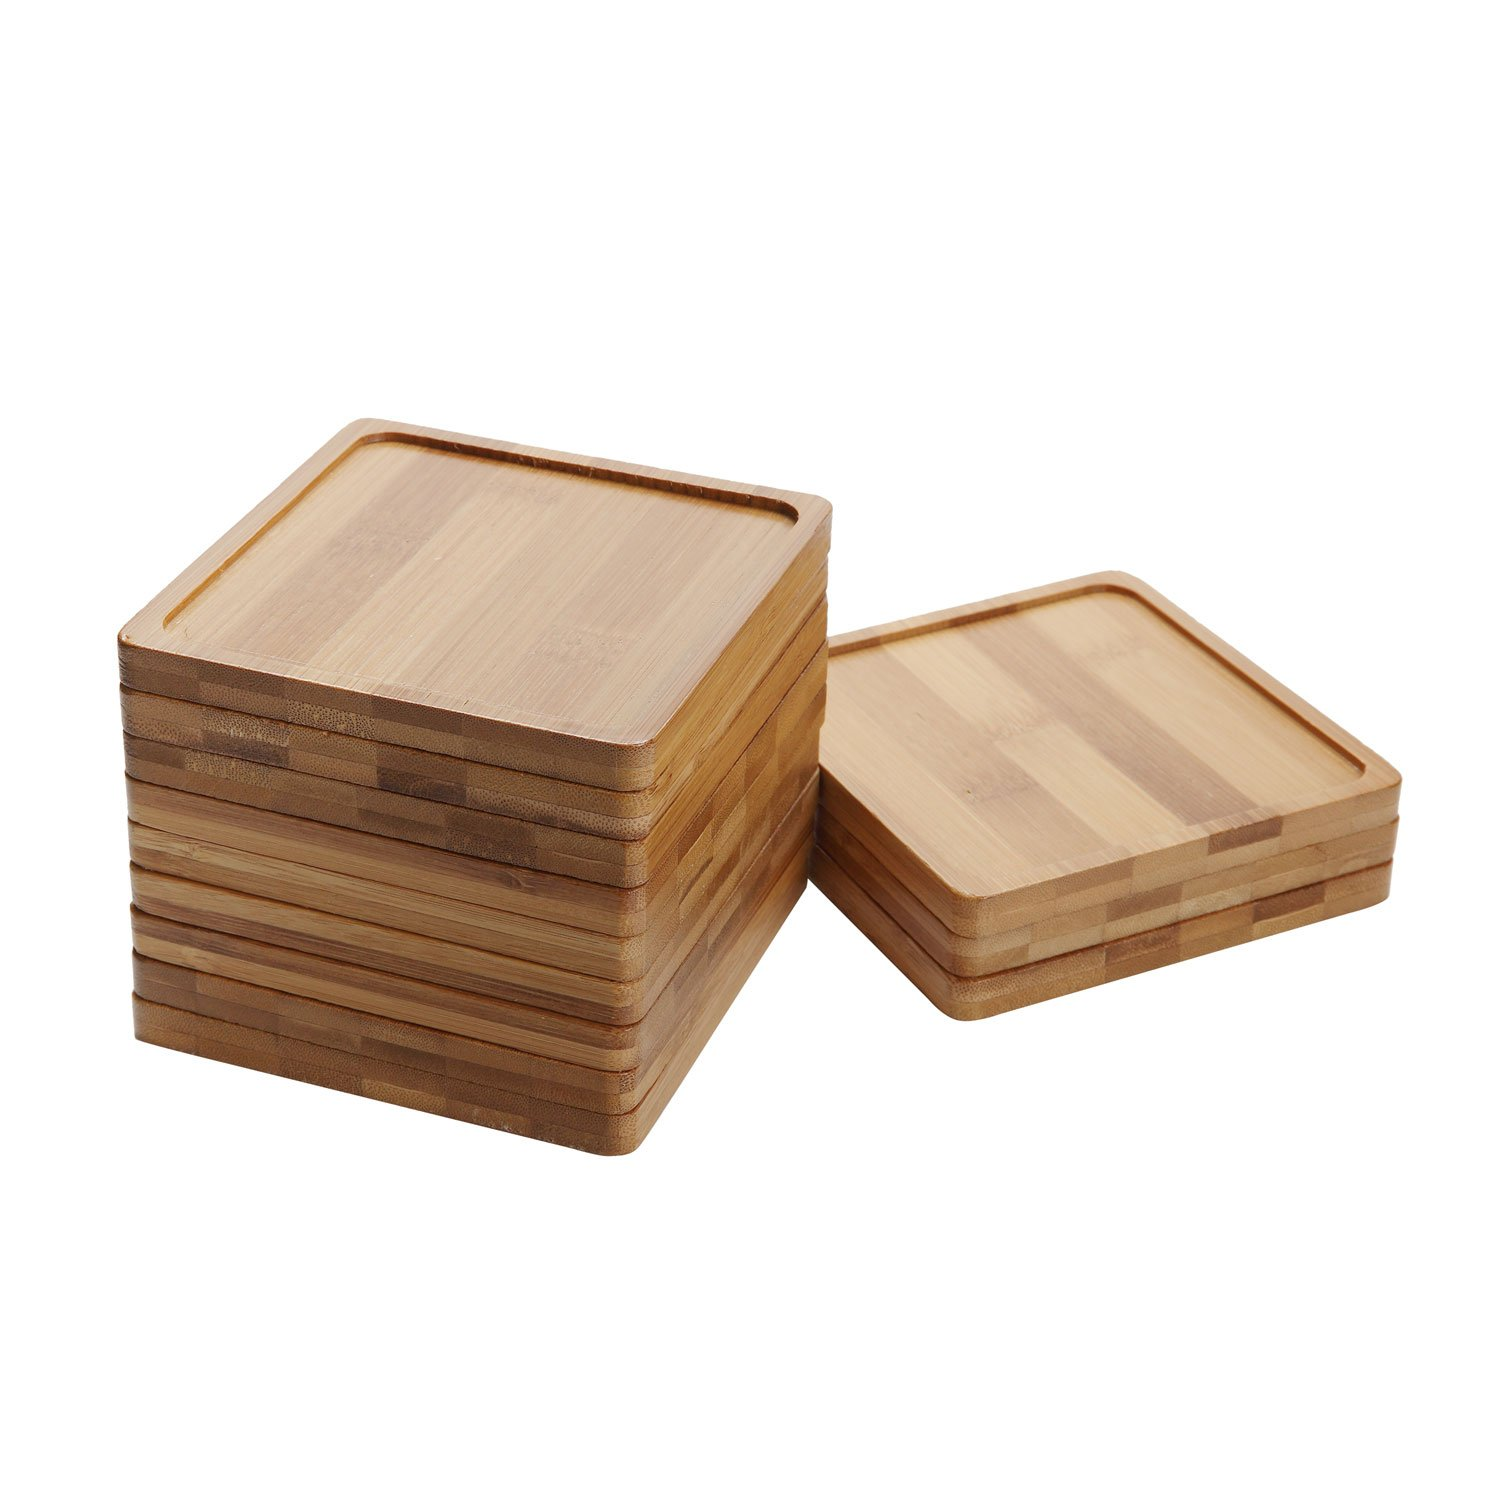 T4U 5 Inch Bamboo Square Bamboo Tray Sandy Beige - Set of 12 by T4U